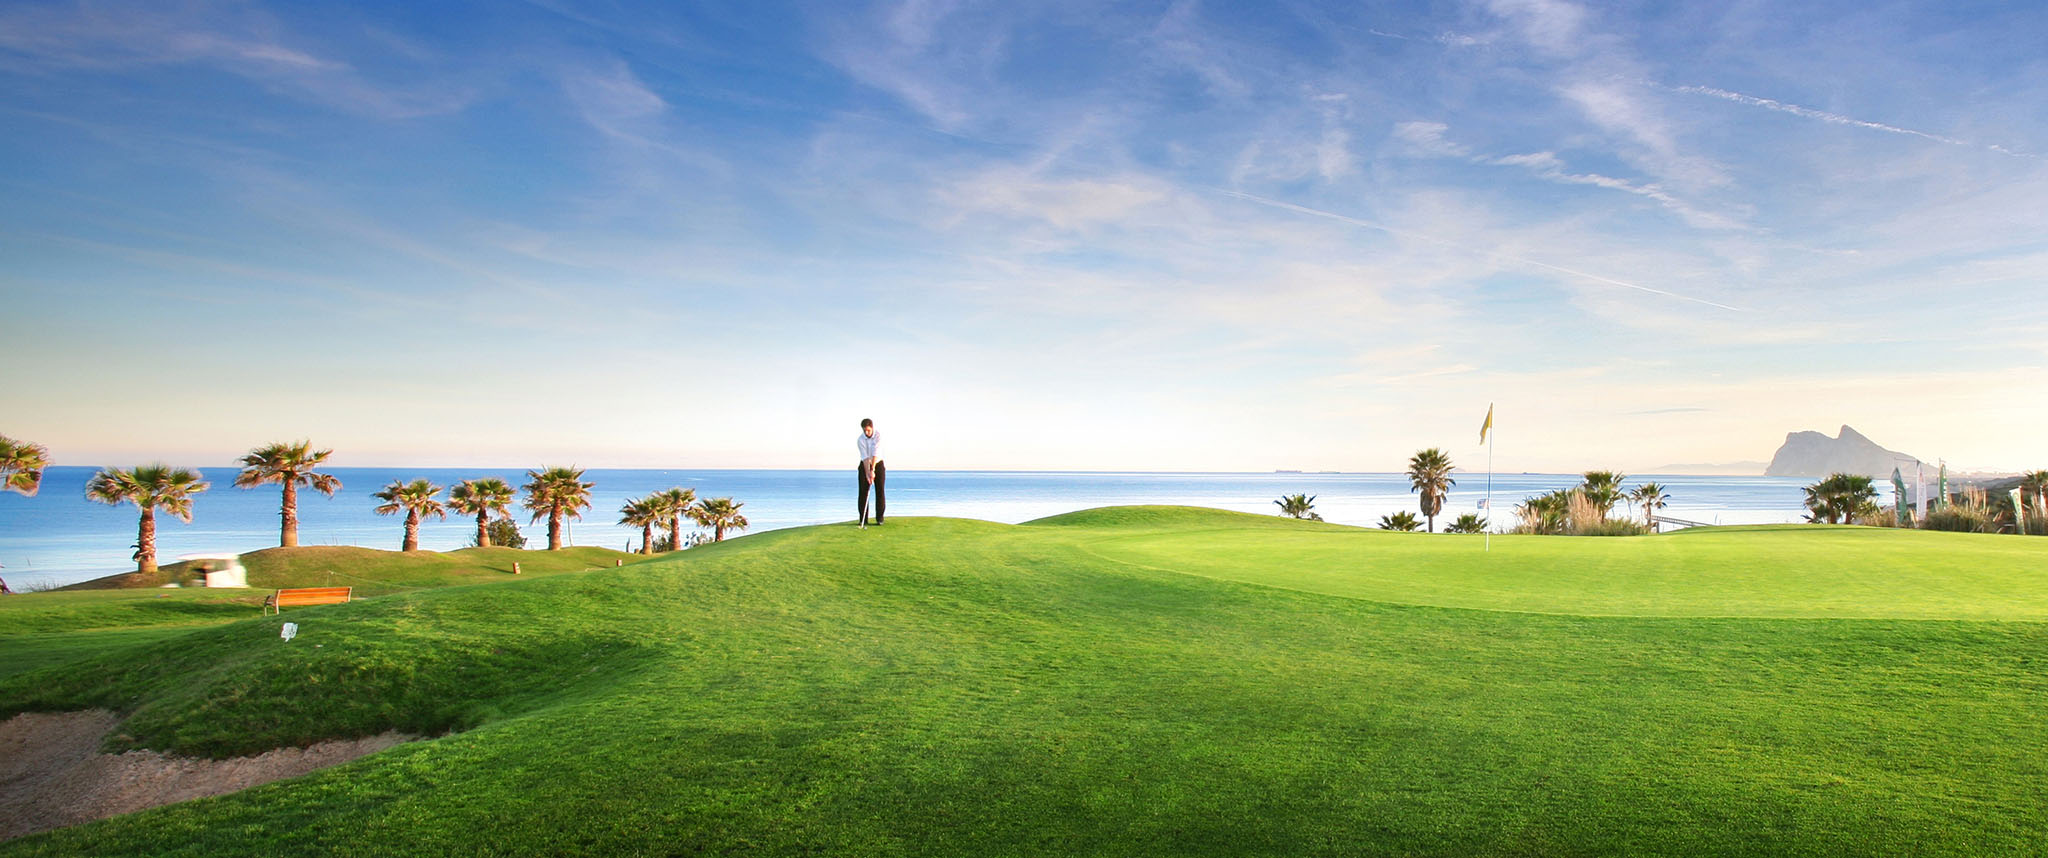 Costa del Sol golf courses